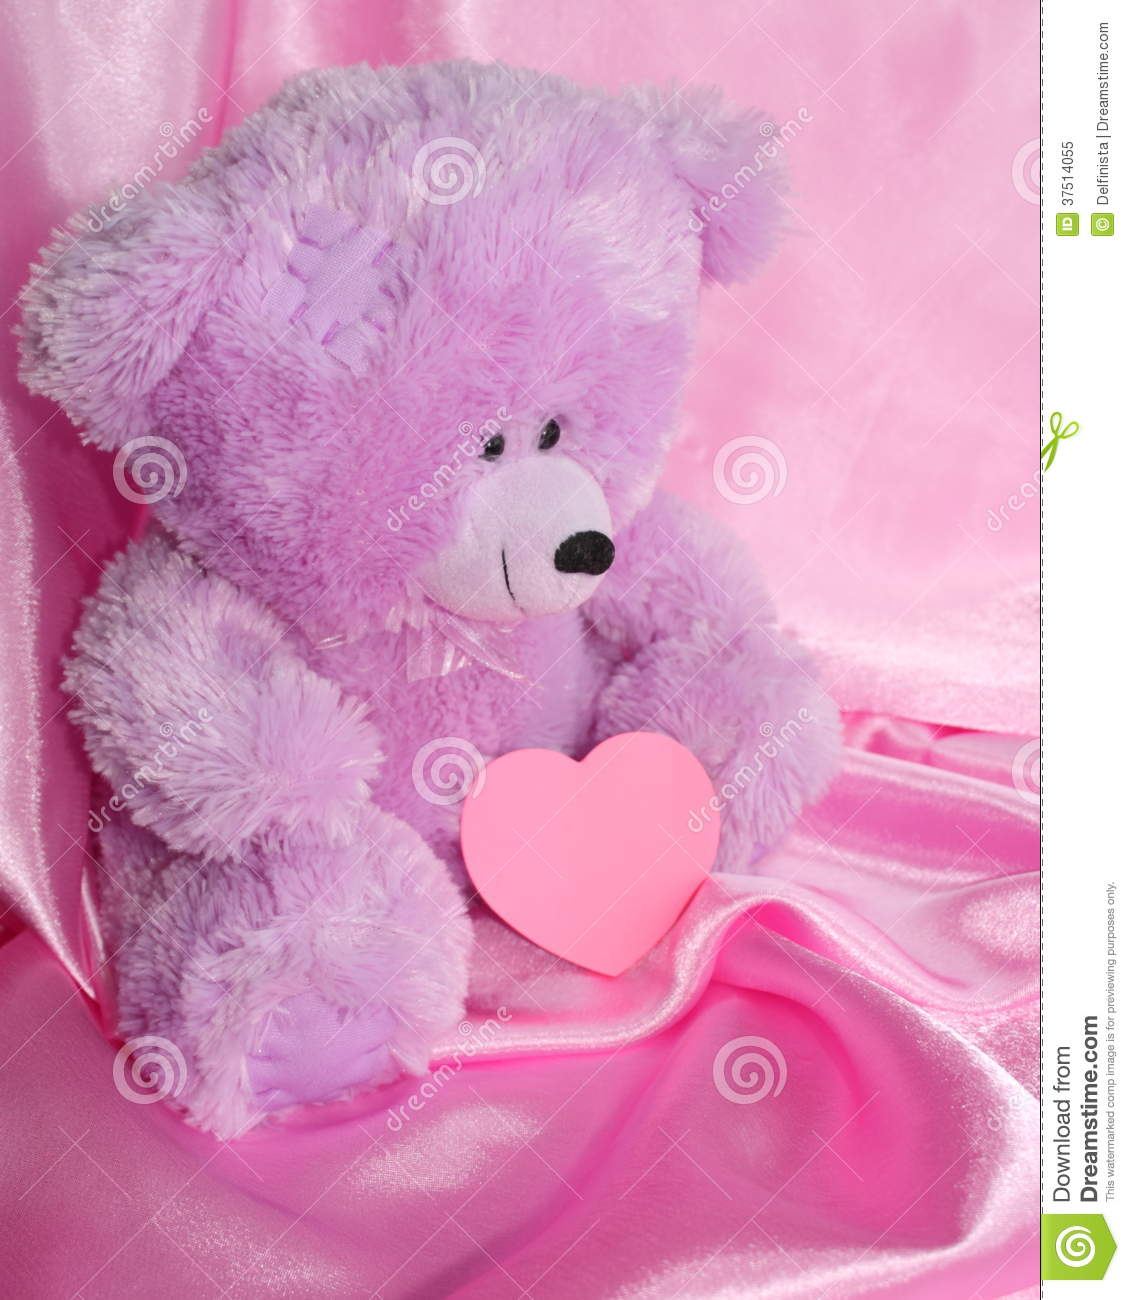 Teddy Bear And Pink Heart On Purple - Stock Photos Royalty Free Stock Photo - Image: 37514055